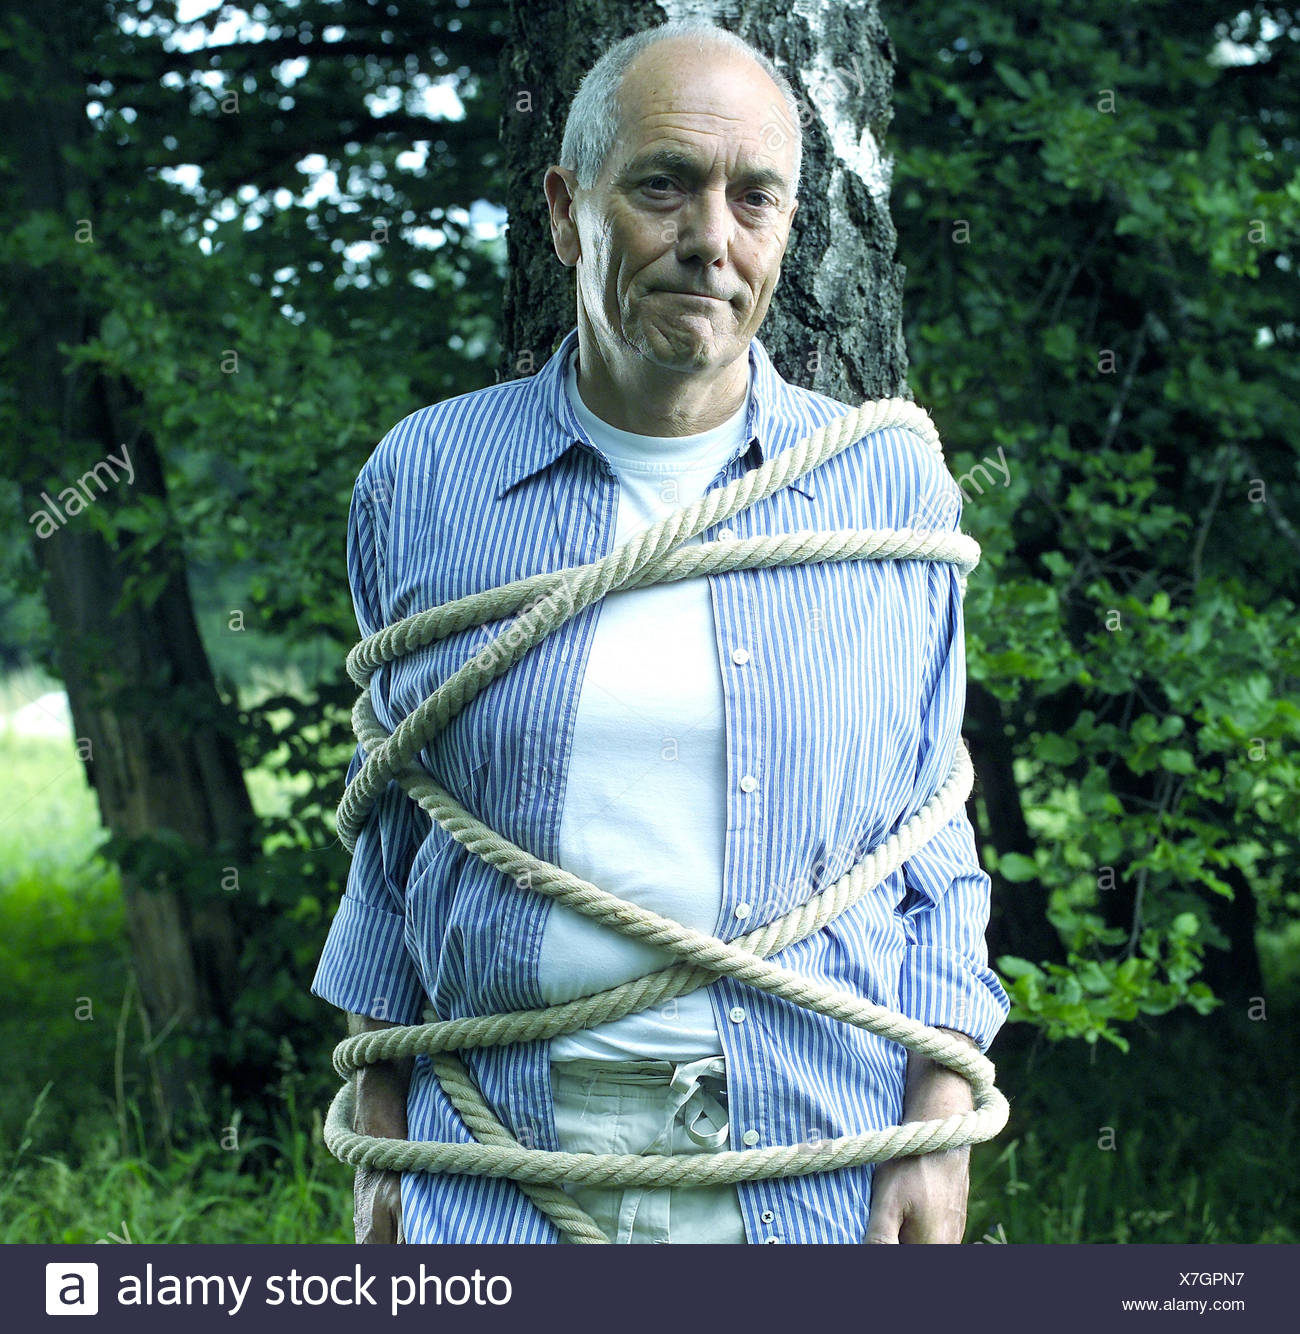 Garden, trunk, senior, tied up, half portrait, man, tree, bound, fastenedly, rope, cable, cord, helplessness, helplessly, defenceless, caught, trapped, hopelessness, hopelessly, maneuver, defenceless, powerless, defencelessness, powerlessness, expression - Stock Image